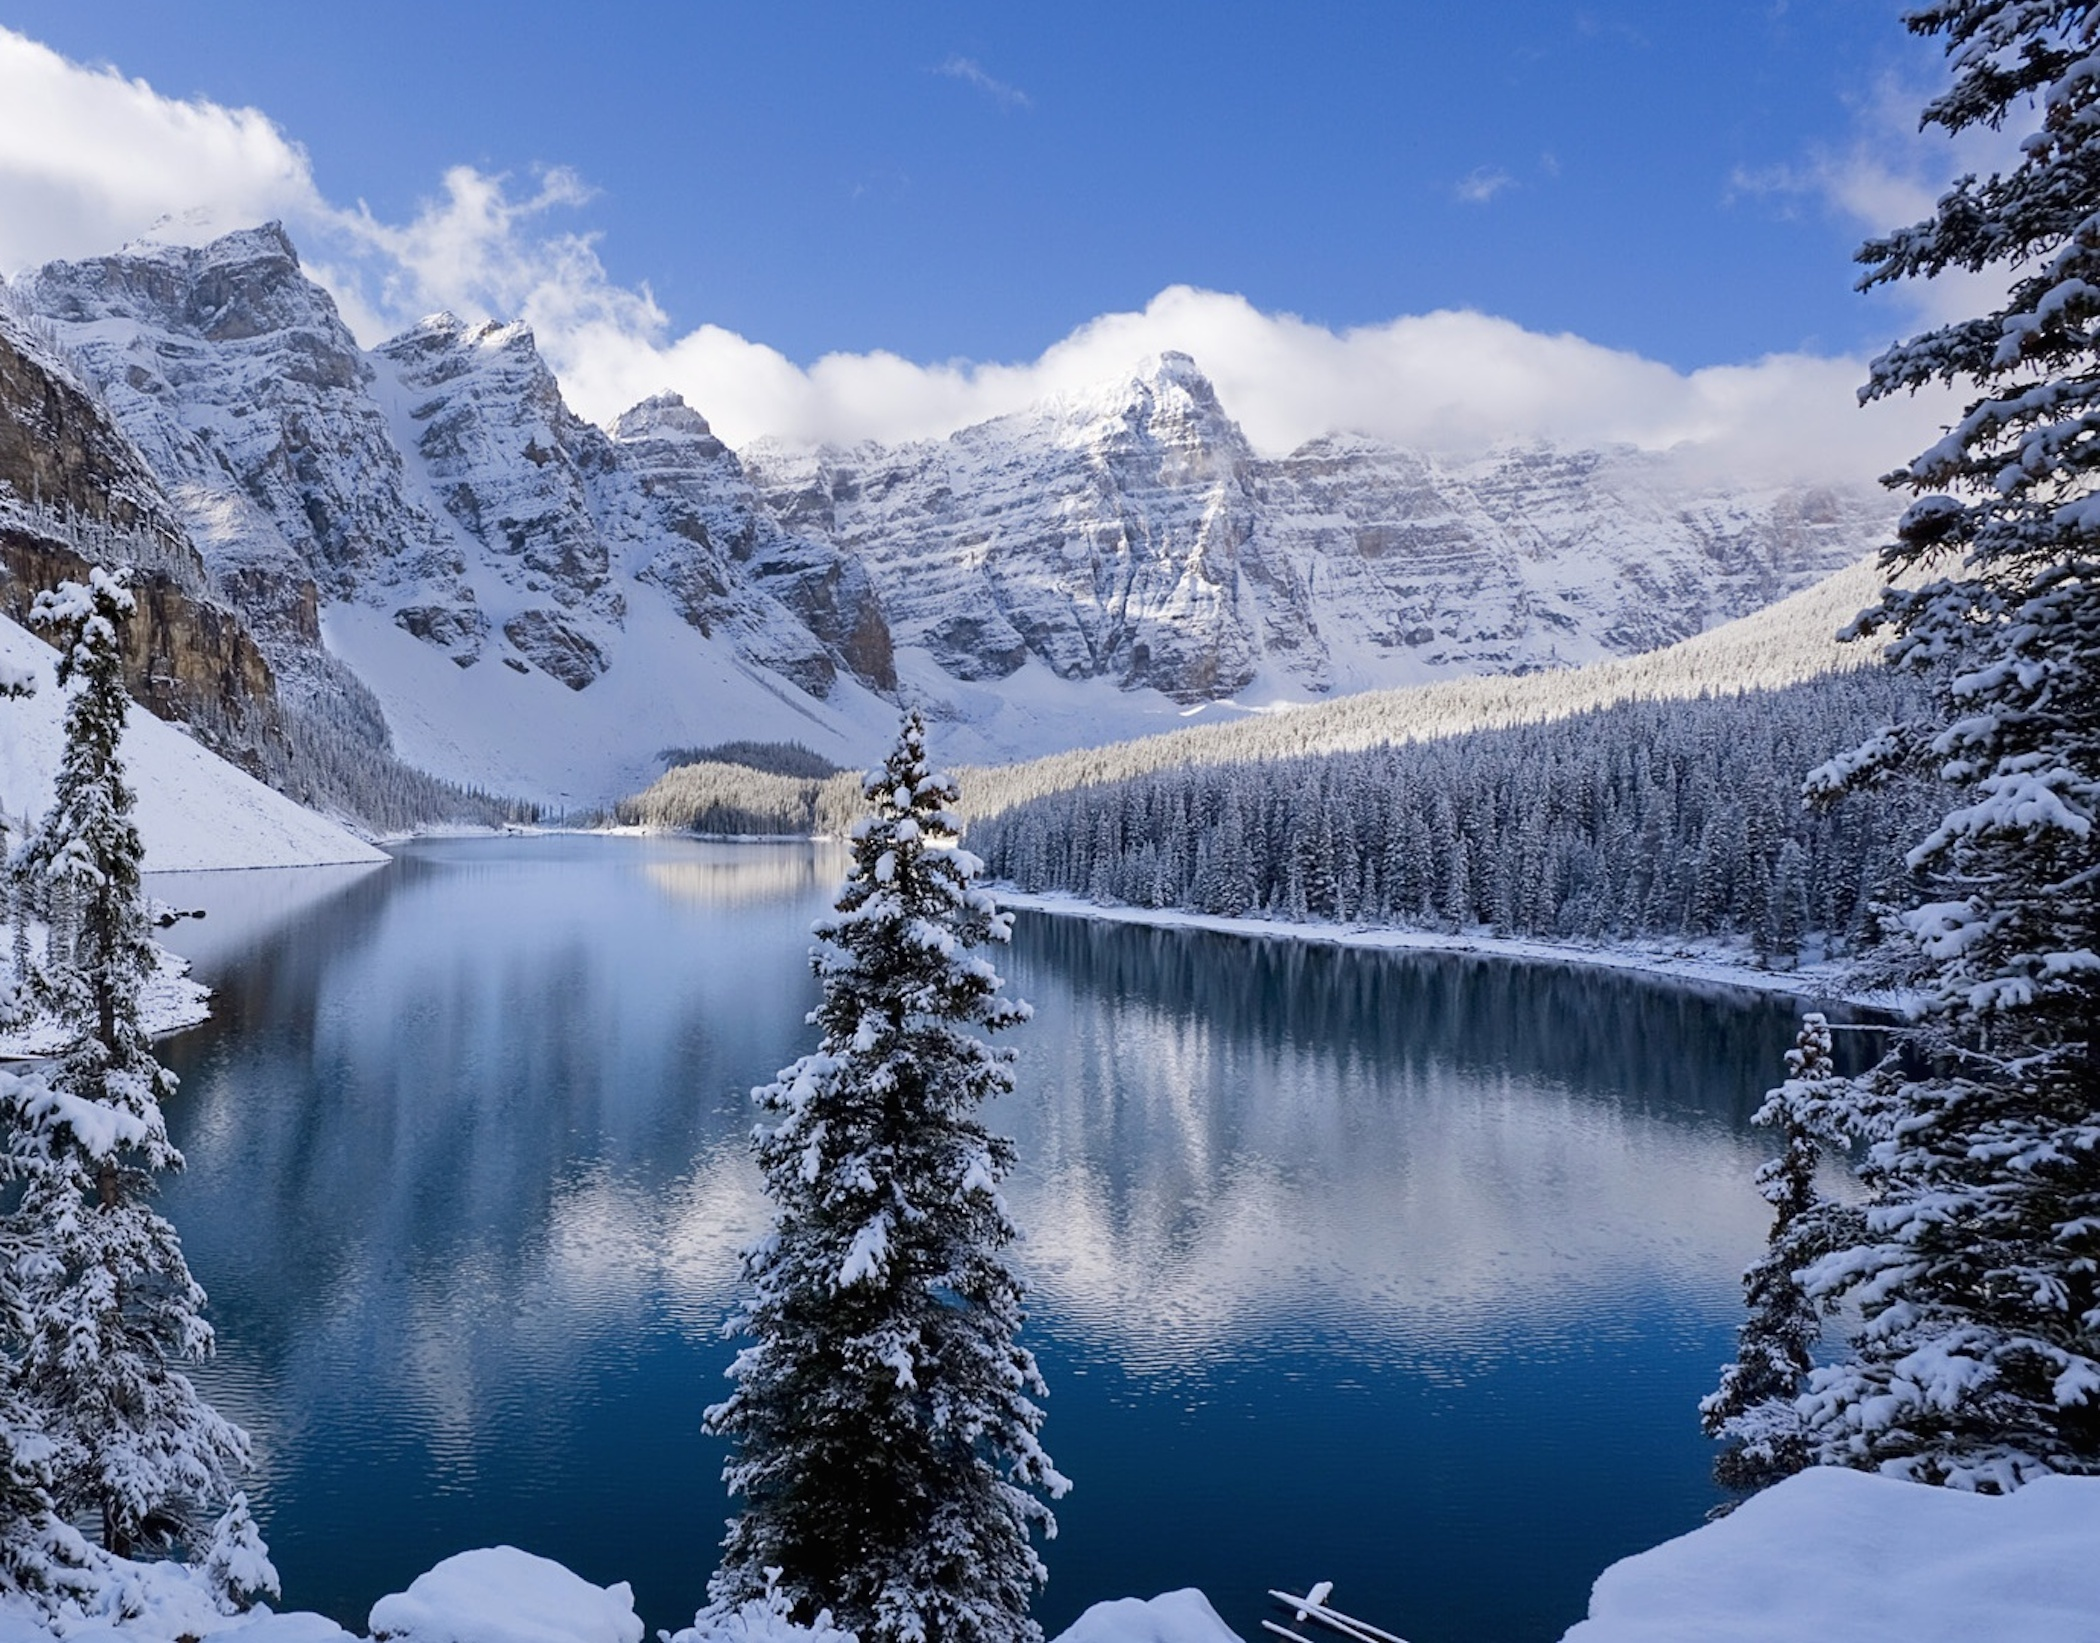 Snow Covered Mountains Wallpaper - Free Downloads